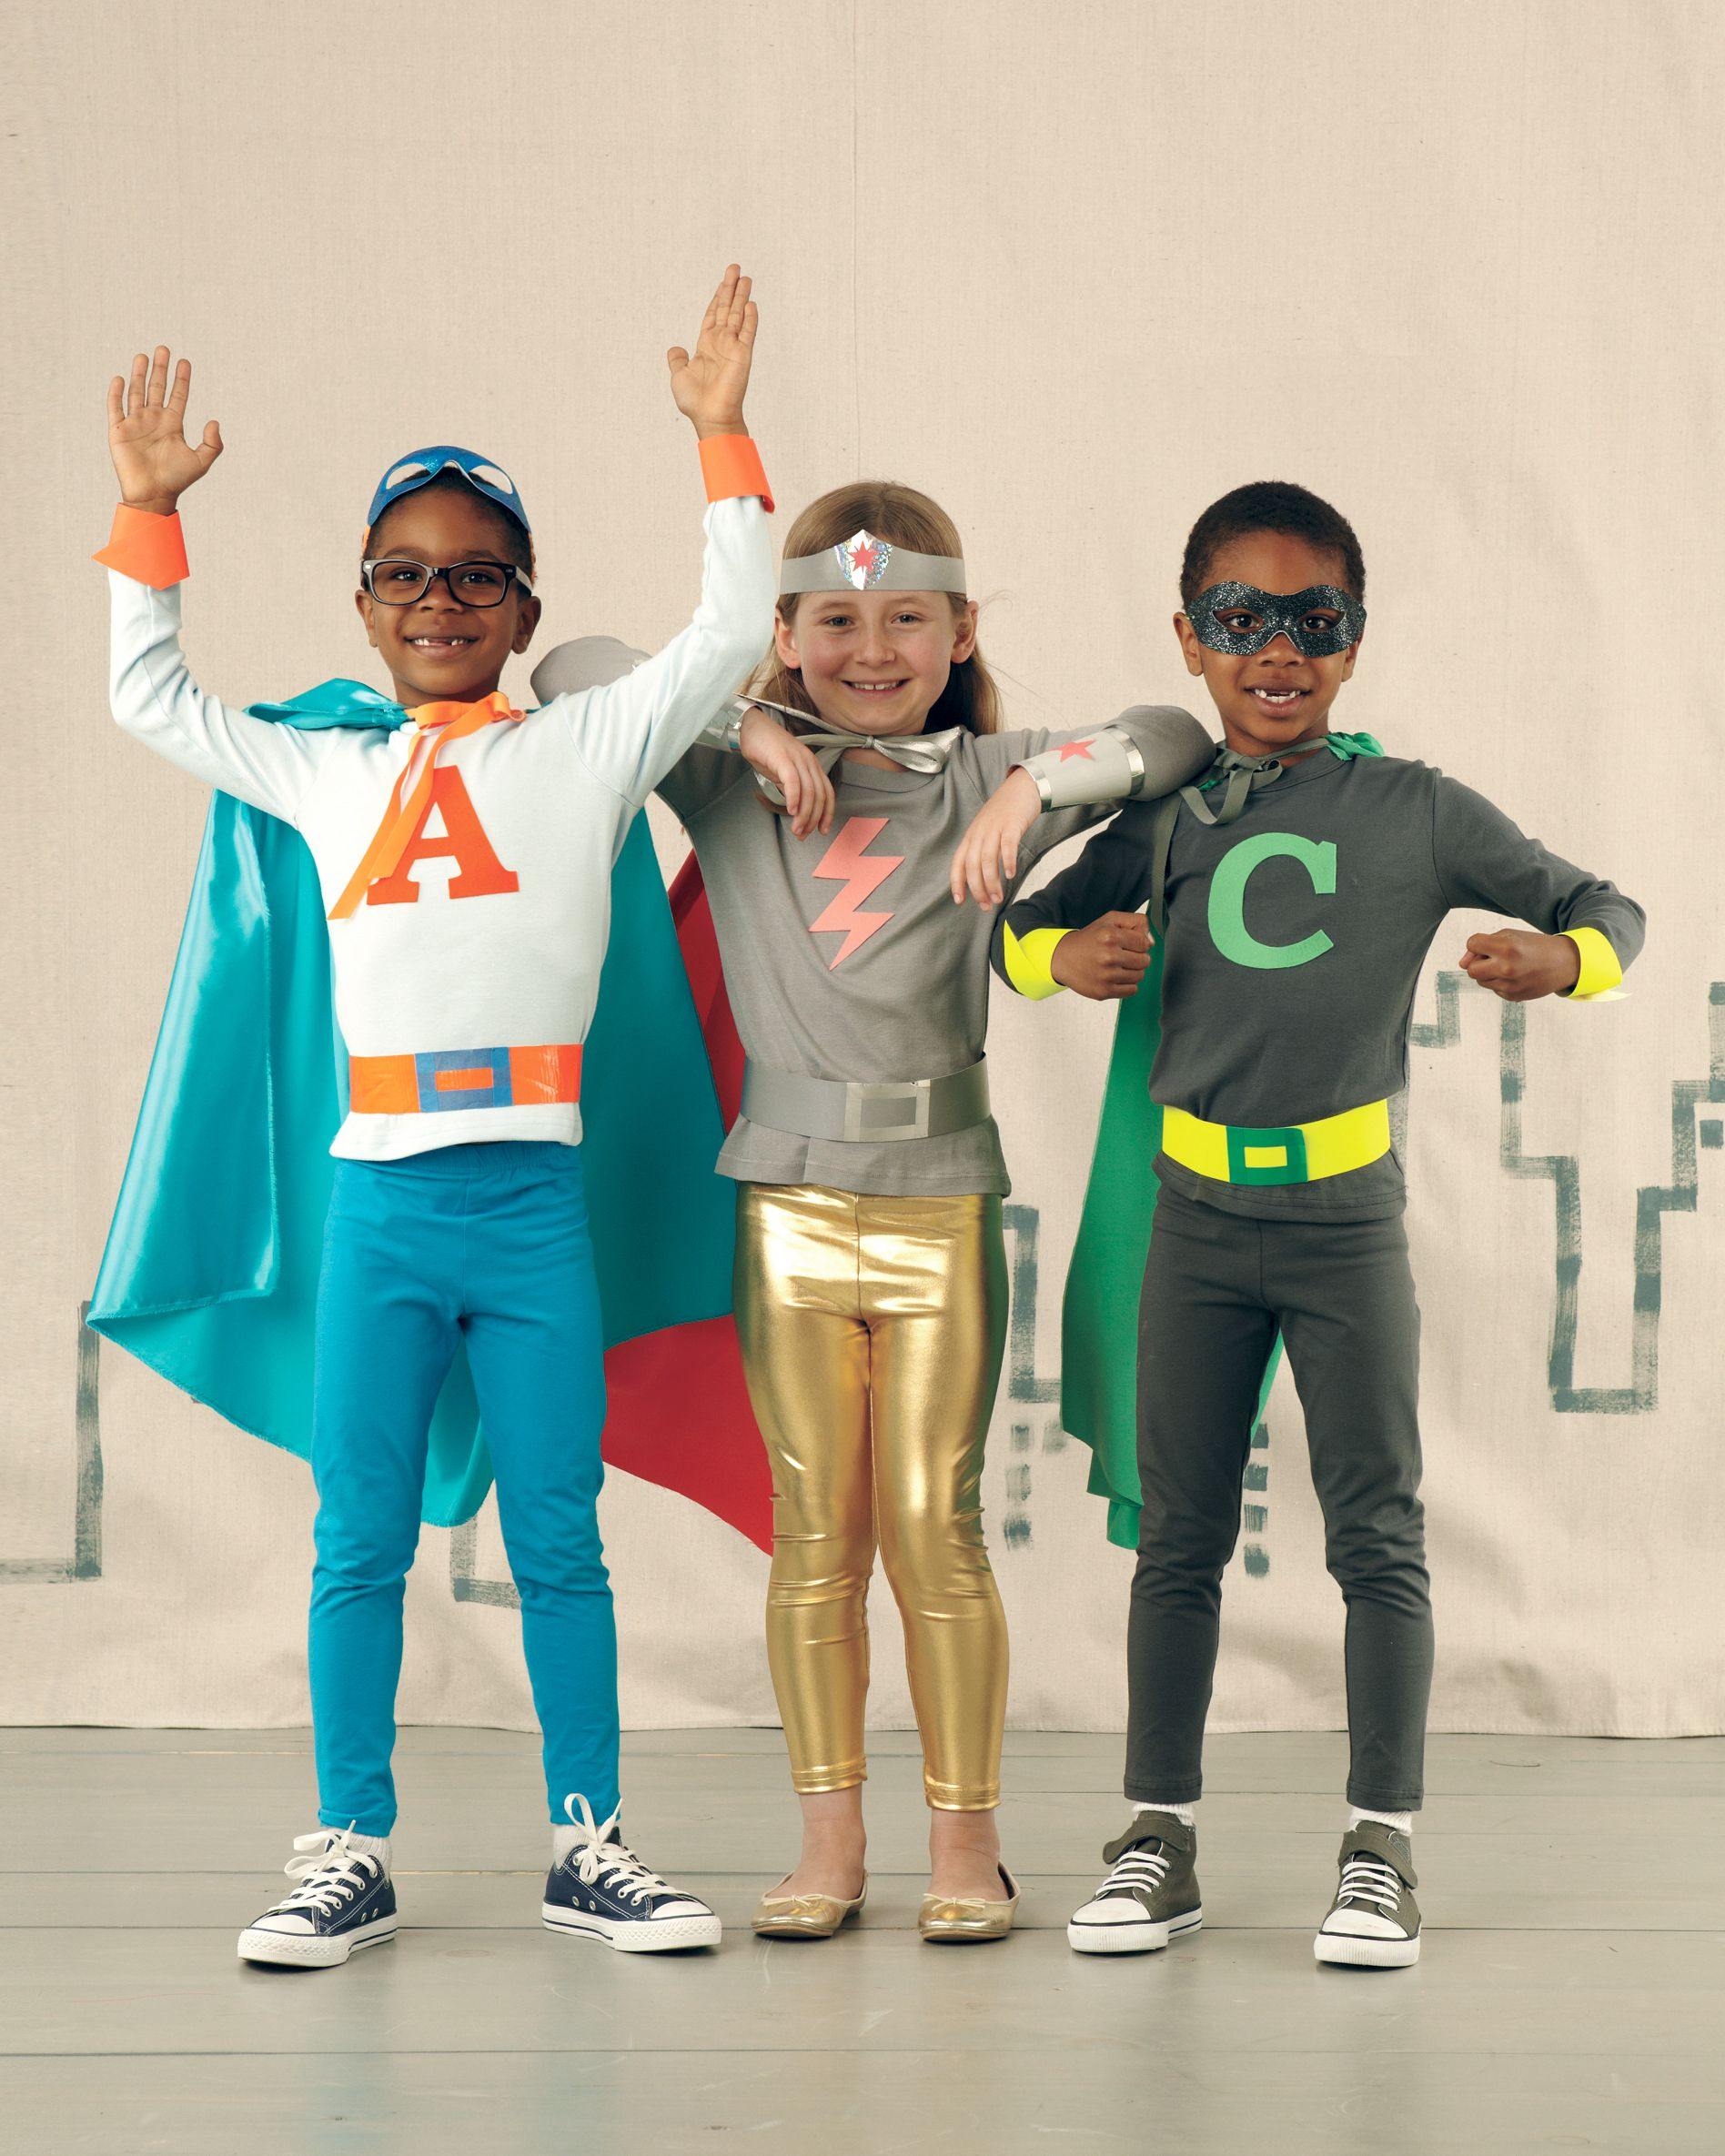 I made my boys a 'wonder twins' costume inspired by these pics.  Their initial on the front, and a lightning bolt and star on the cape.  Lurv it!